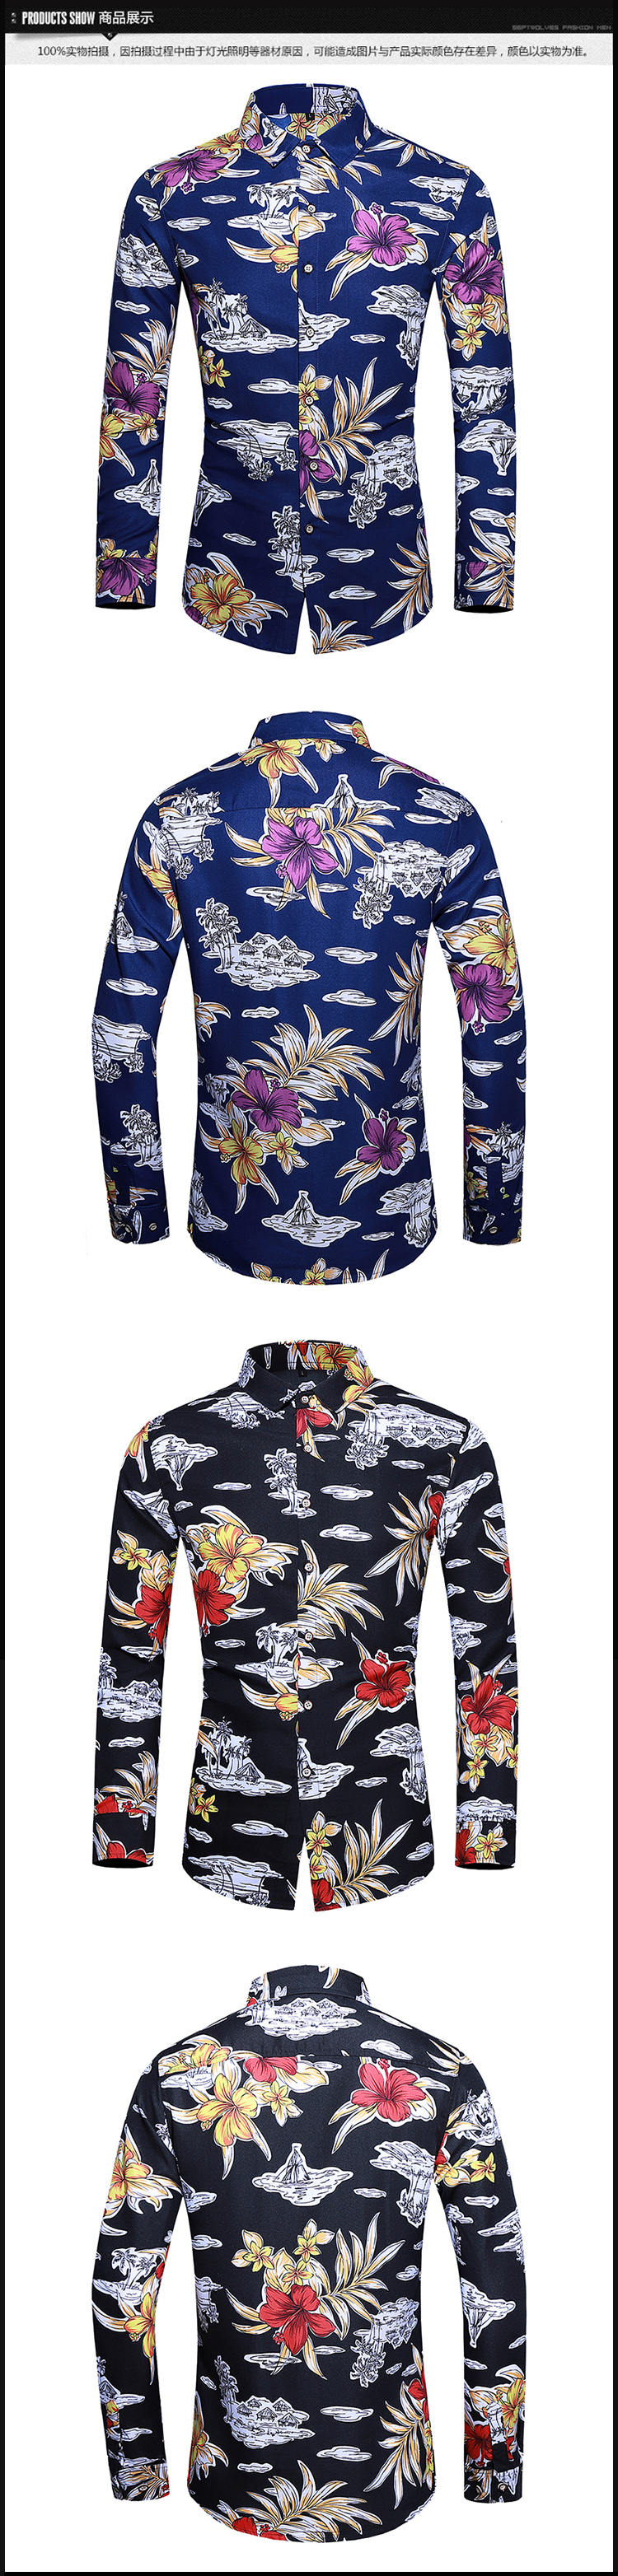 HTB10tX5XEY1gK0jSZFMq6yWcVXaw - Casuals Shirt Men Autumn New Arrival Personality Printing Long Sleeve Shirts Mens Fashion Big Size Business Office Shirt 6XL 7XL